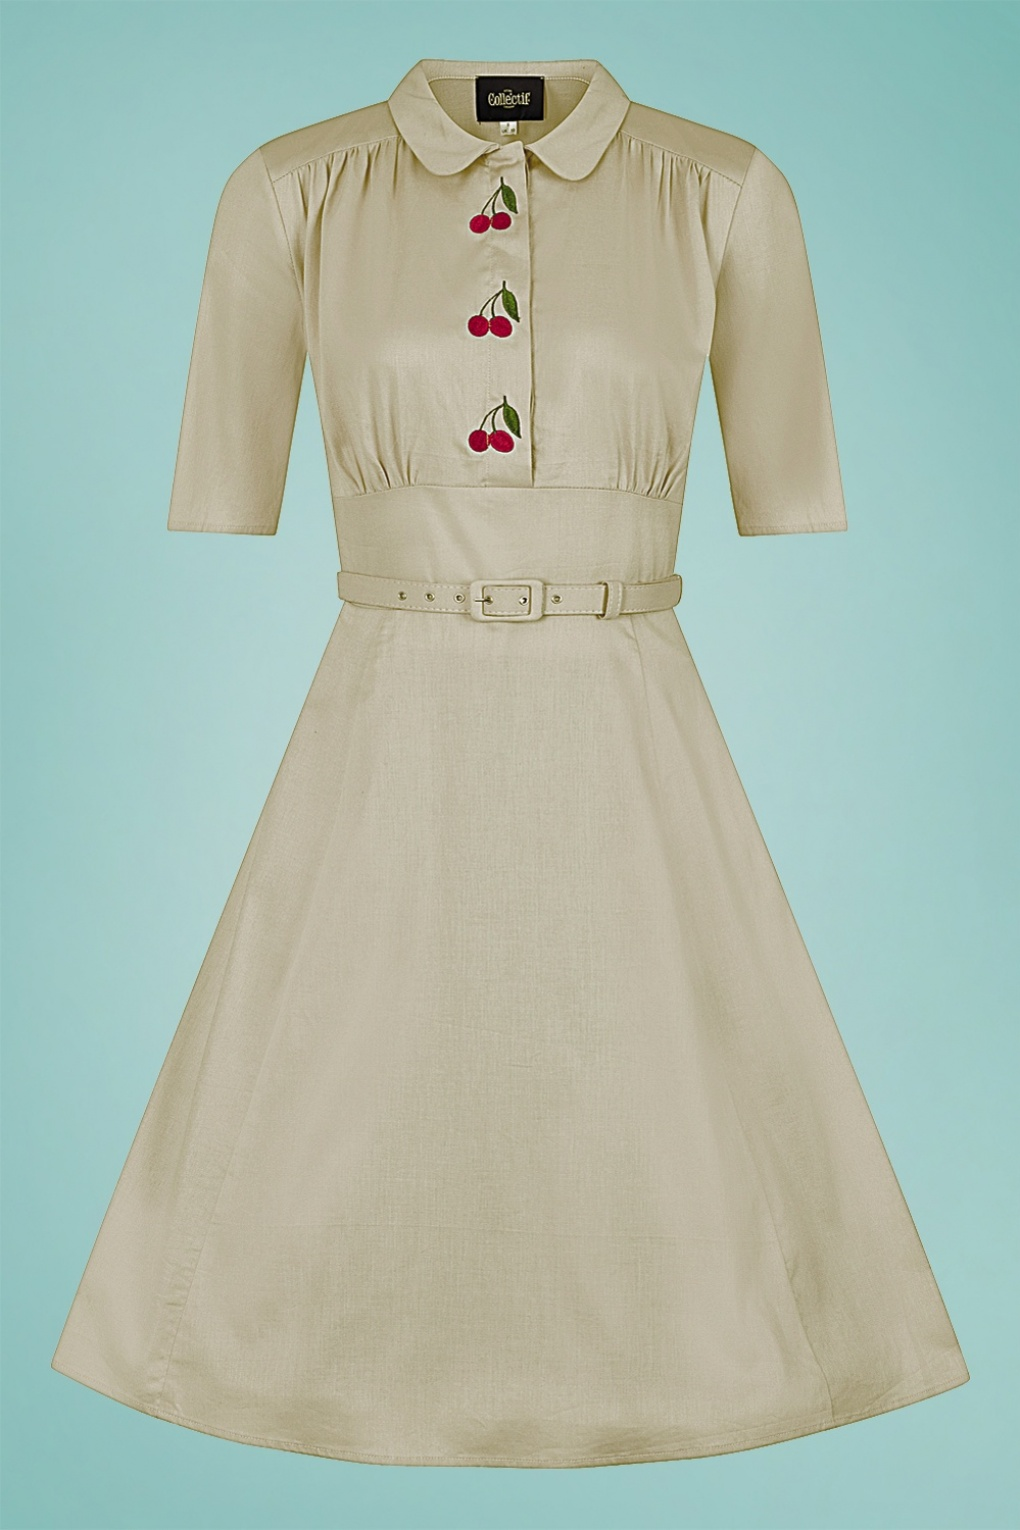 500 Vintage Style Dresses for Sale | Vintage Inspired Dresses 40s Doriane Cherry Swing Dress in Beige £69.30 AT vintagedancer.com